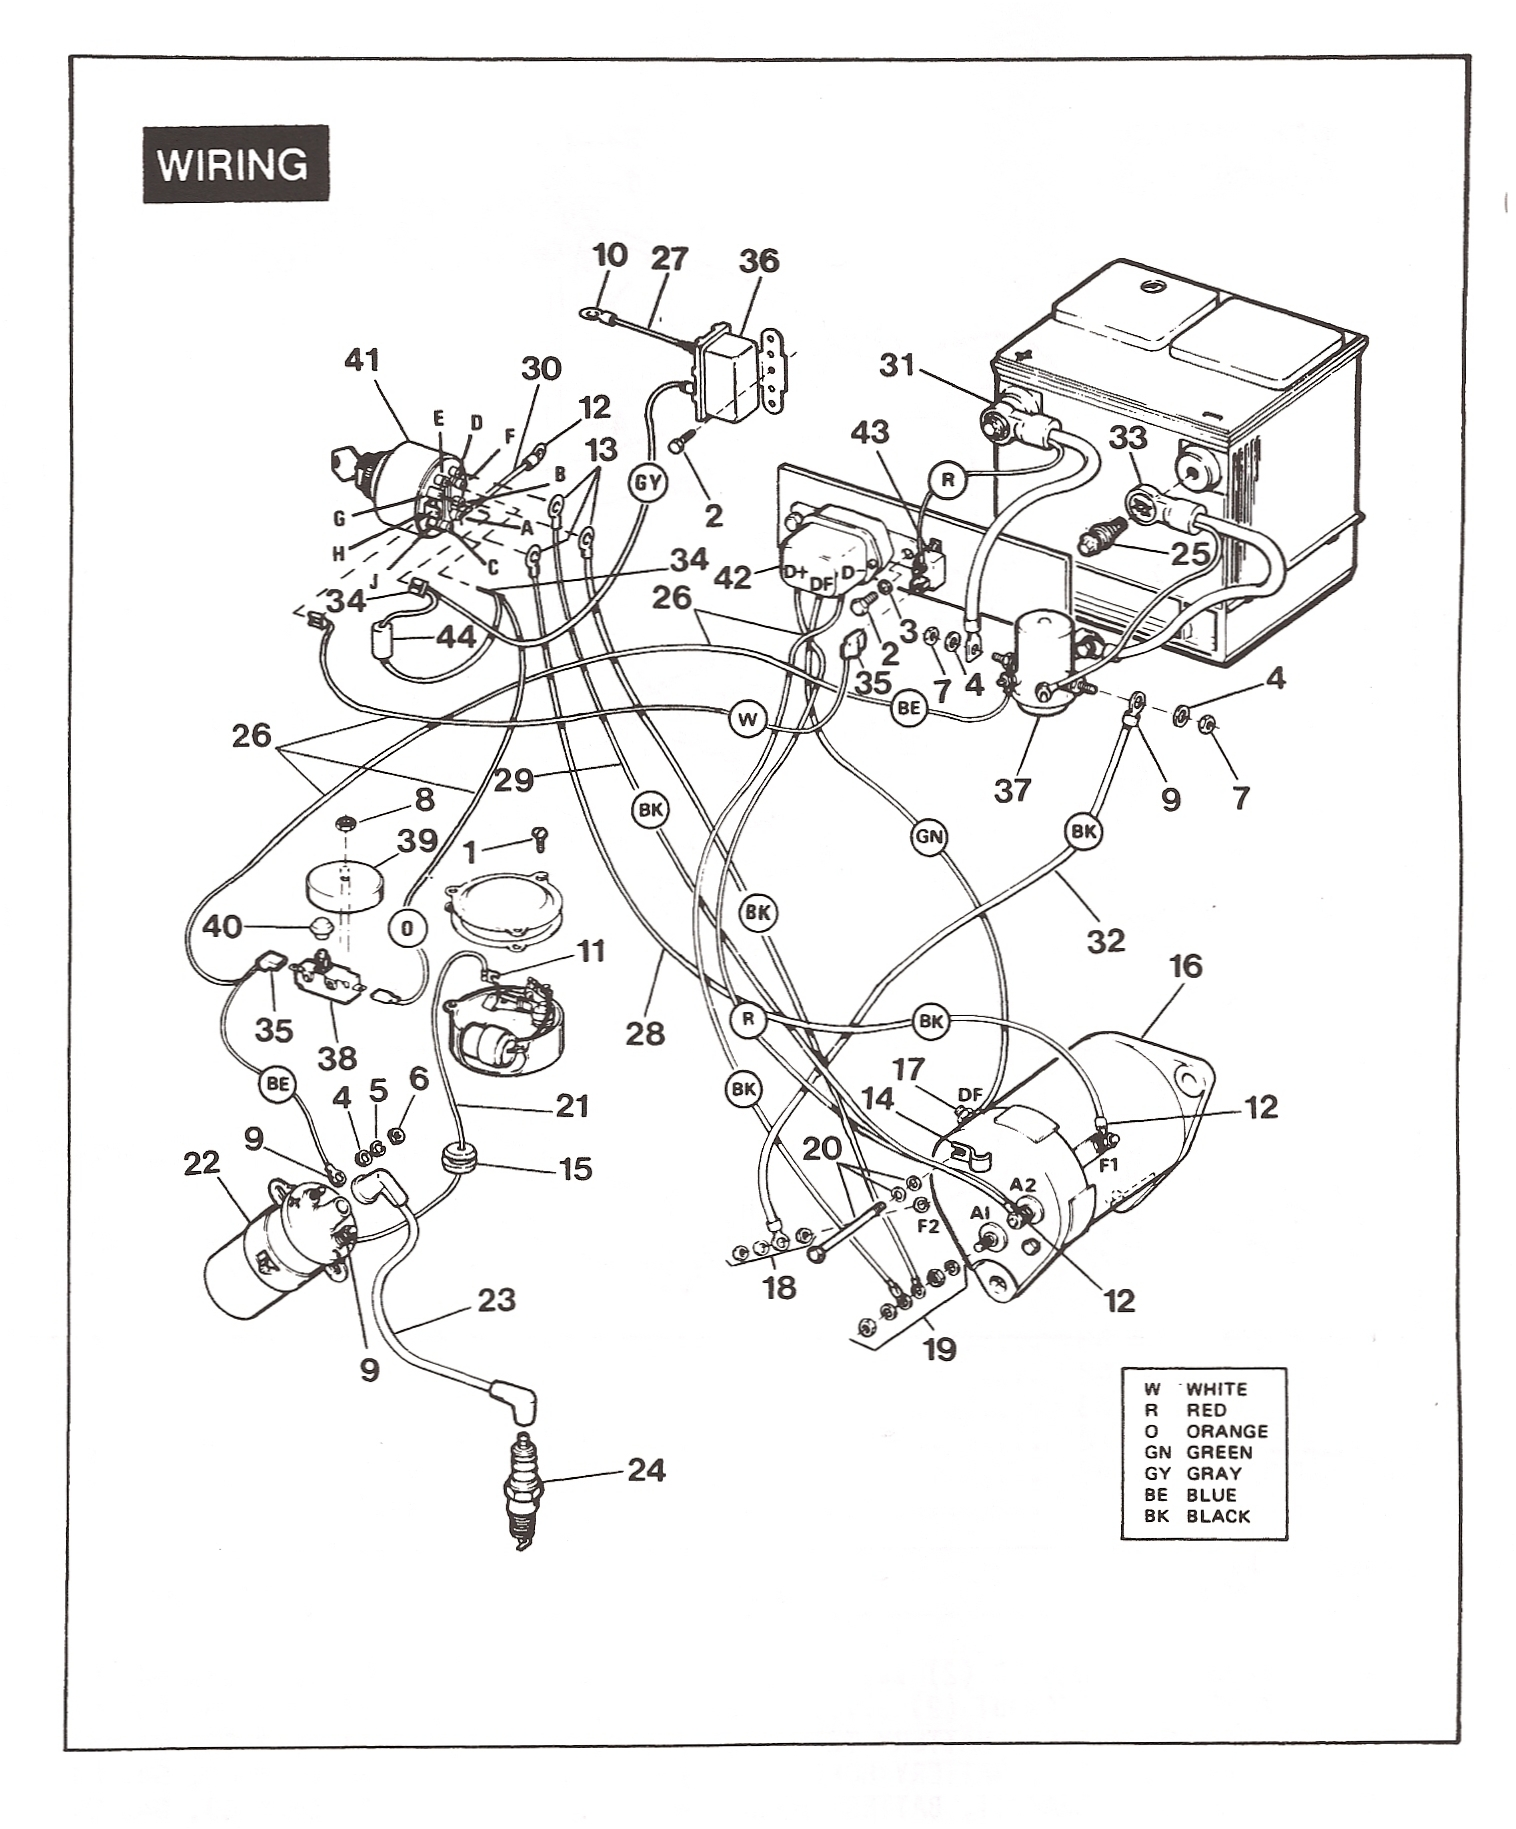 hight resolution of harley davidson golf car wiring diagrams wiring diagram blog 1982 club car wiring diagram wiring diagrams